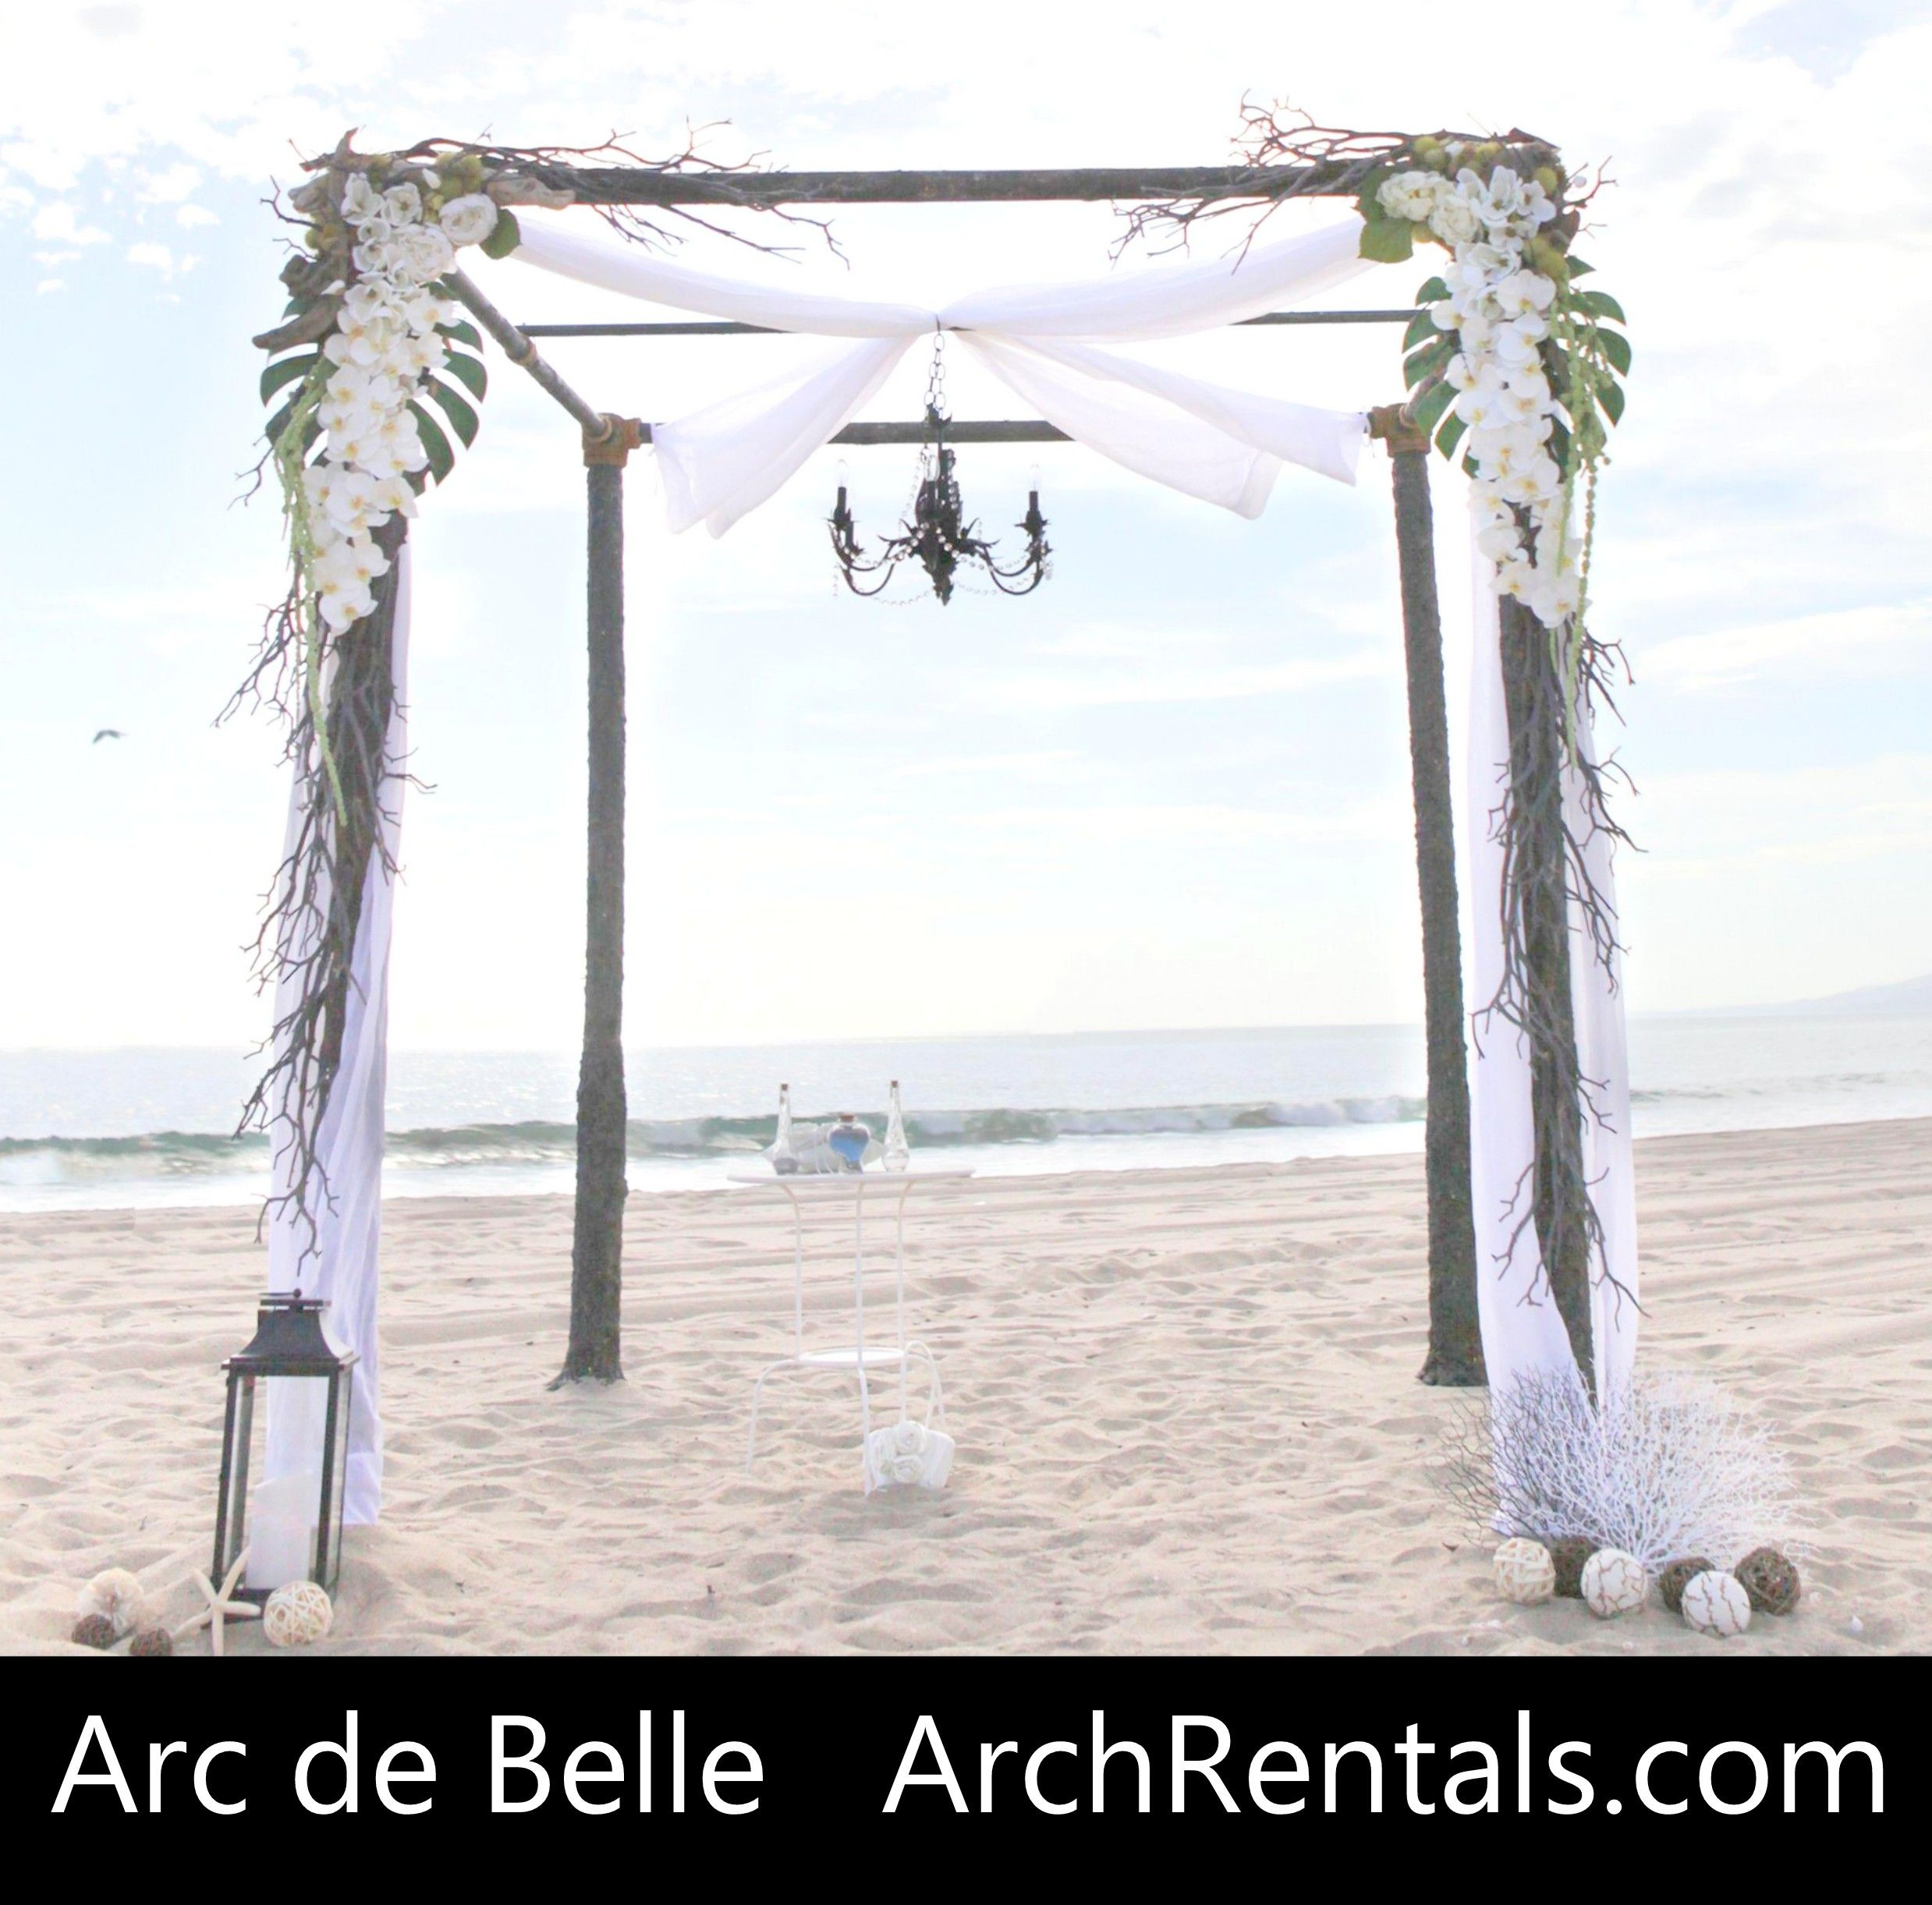 Dark Rustic Wedding Chuppah with Chandelier Rental at Santa Monica